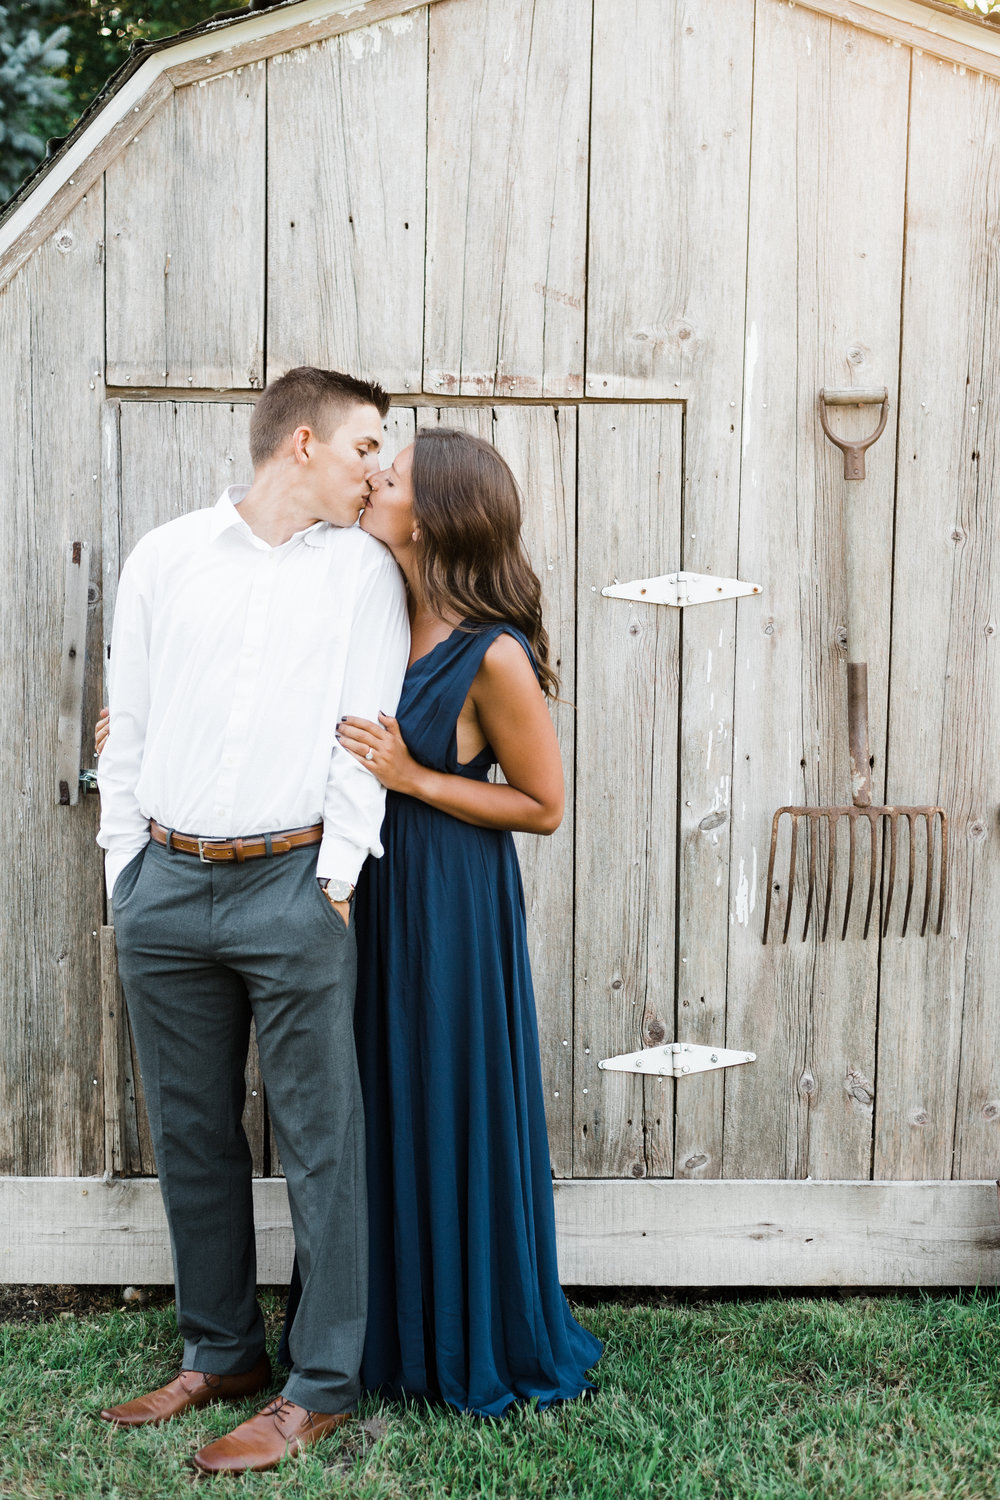 Engaged couple kisses in front of a shed with a pitchfork hanging on it.